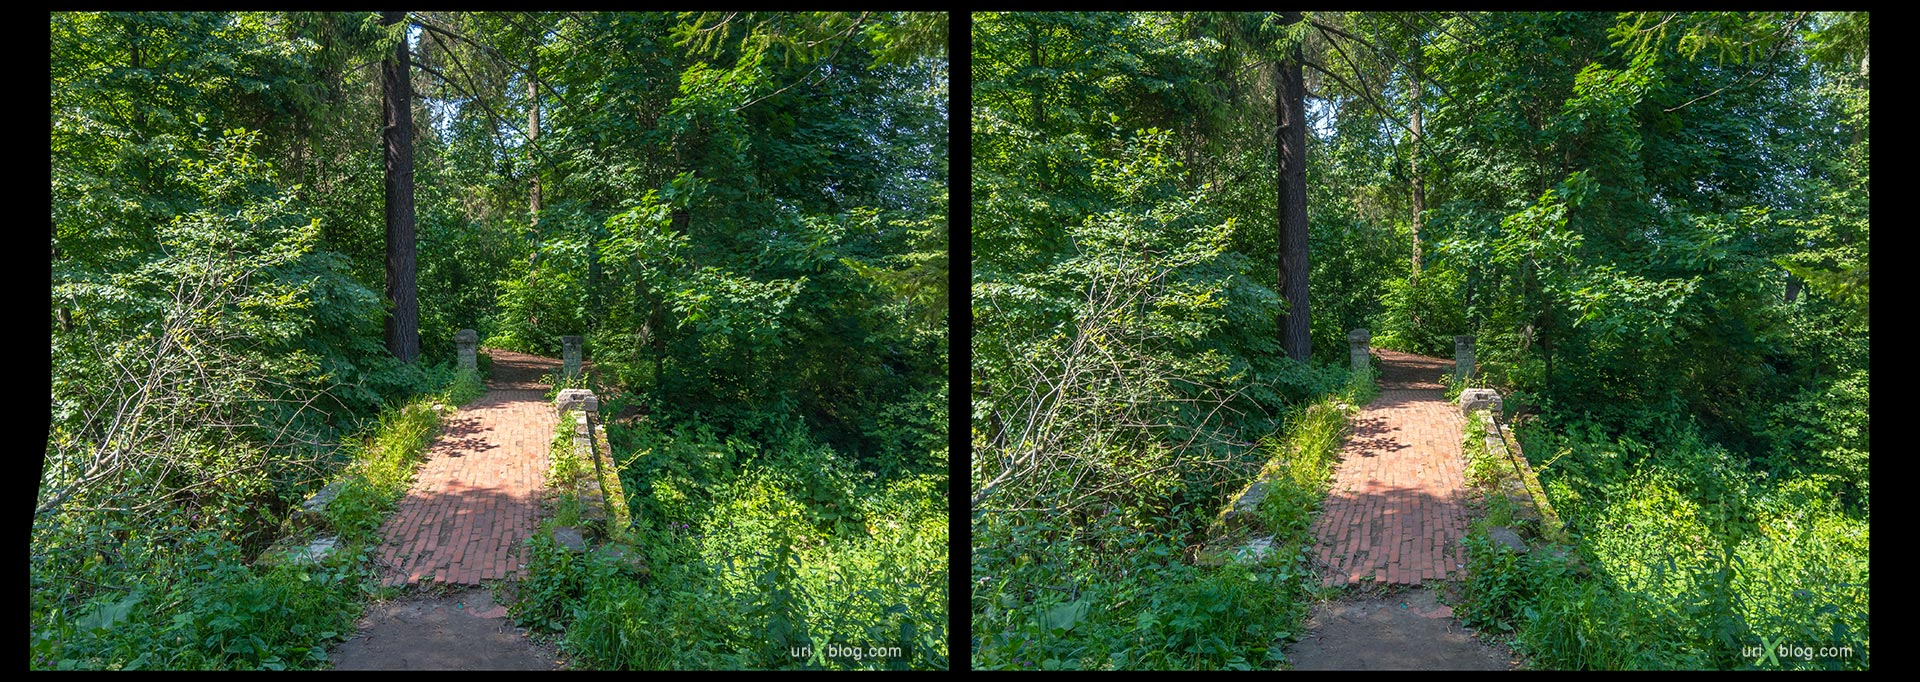 bridge, Serednikovo homestead, Barsky pond, lake, Russia, 3D, stereo pair, cross-eyed, crossview, cross view stereo pair, stereoscopic